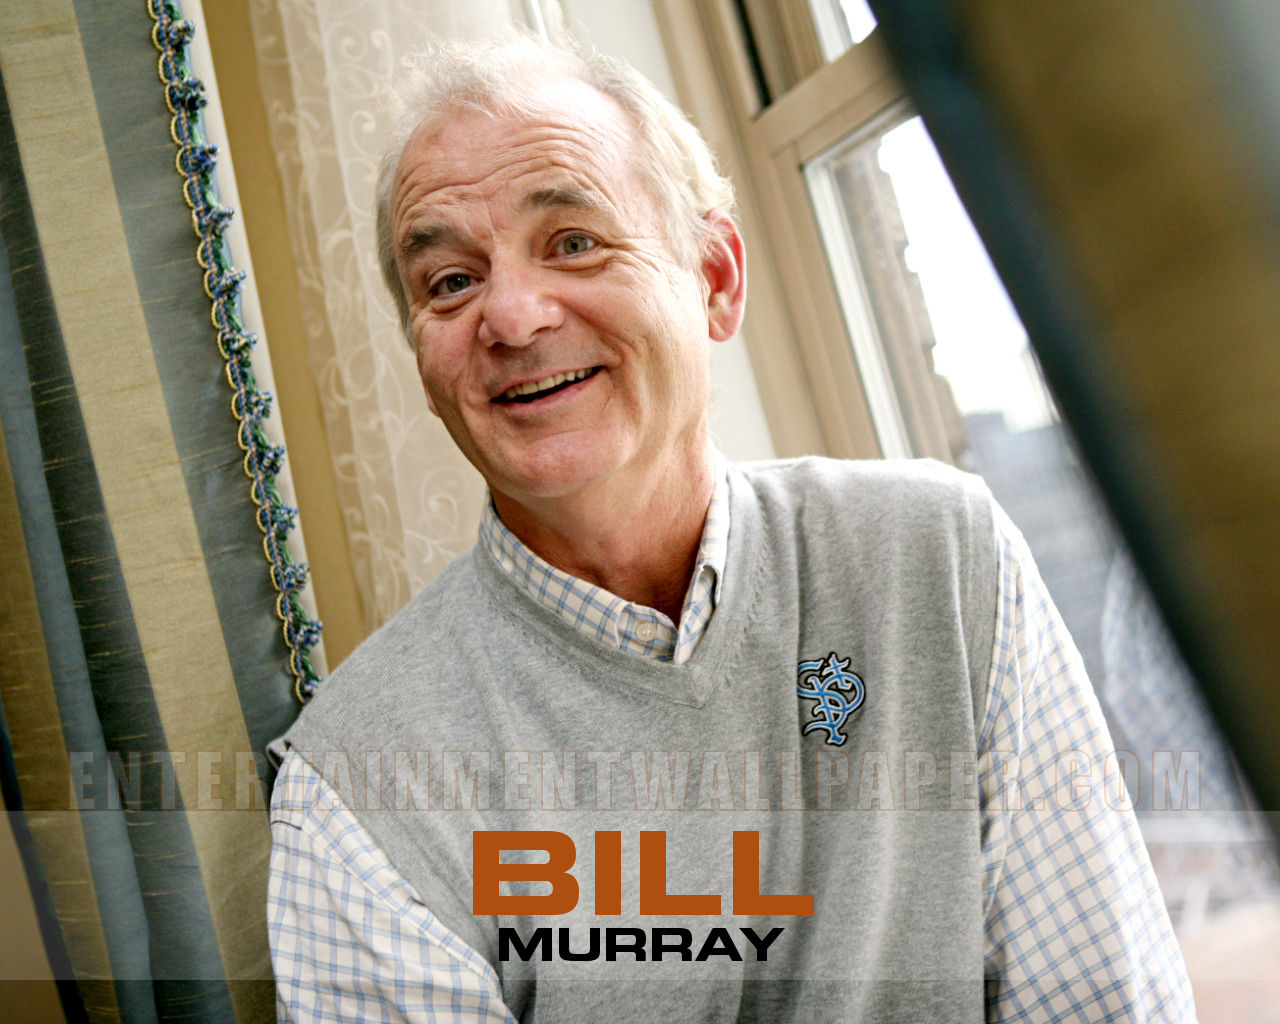 bill murray hd wallpaper - photo #32